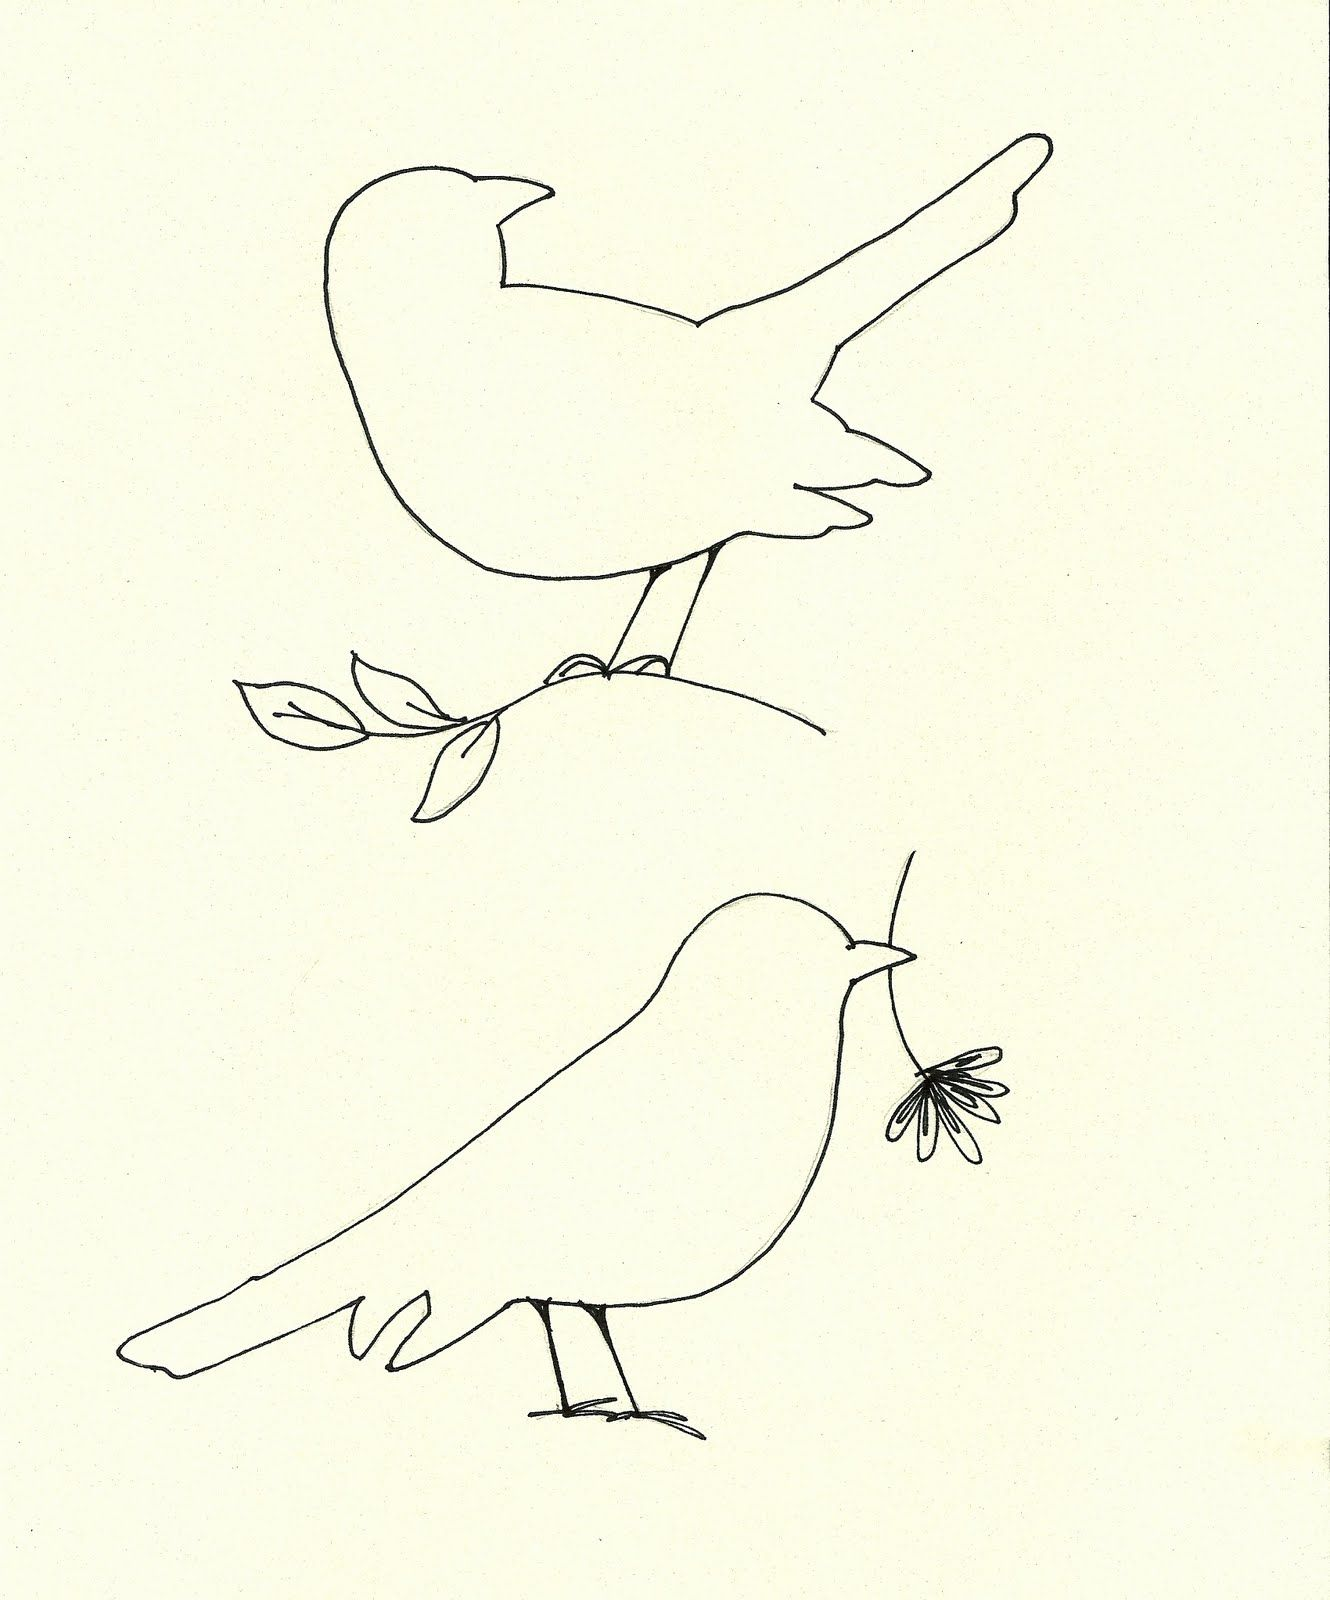 Pigeon Coloring Page To Print Out: Bird Cut Out Template